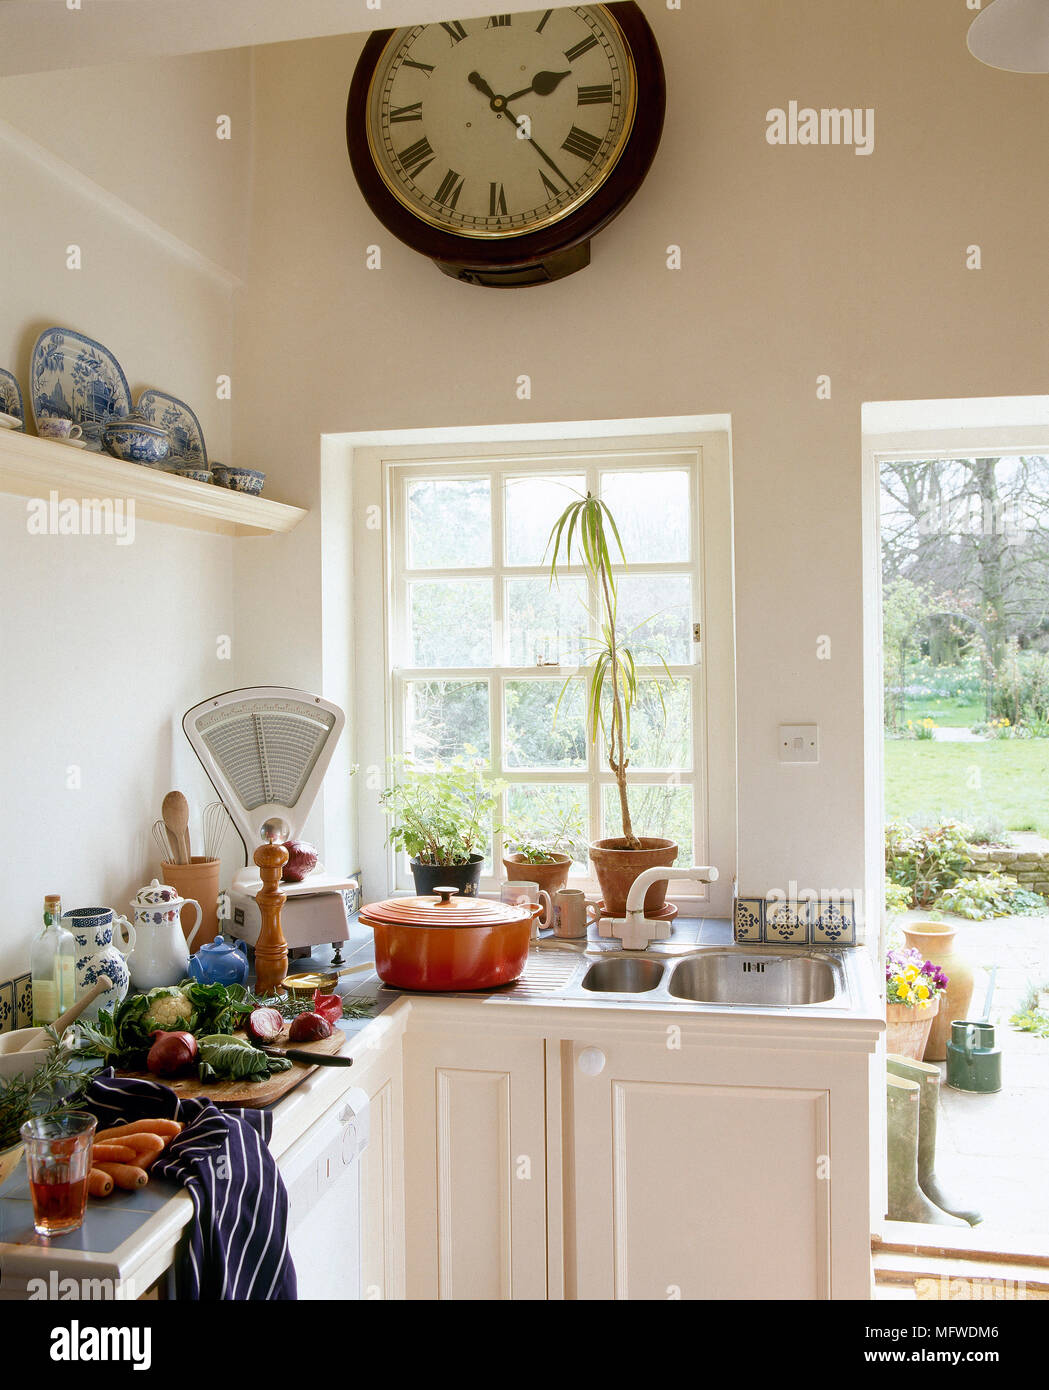 Astounding Country Style Kitchen With White Units And Clock Above Bralicious Painted Fabric Chair Ideas Braliciousco